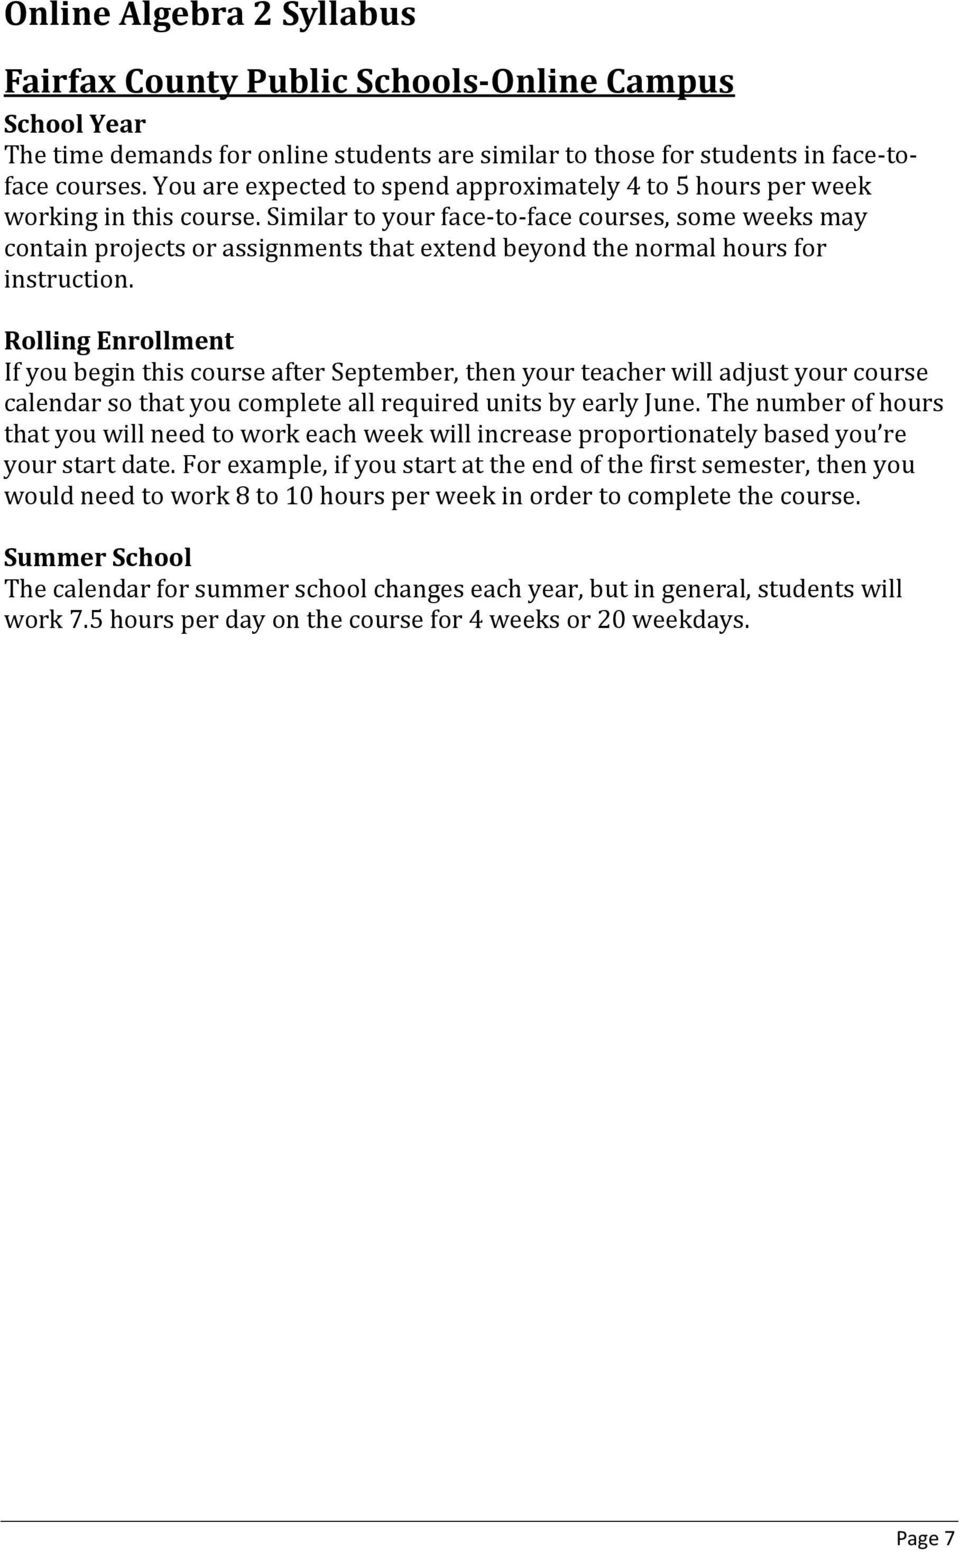 Rolling Enrollment If you begin this course after September, then your  teacher will adjust your